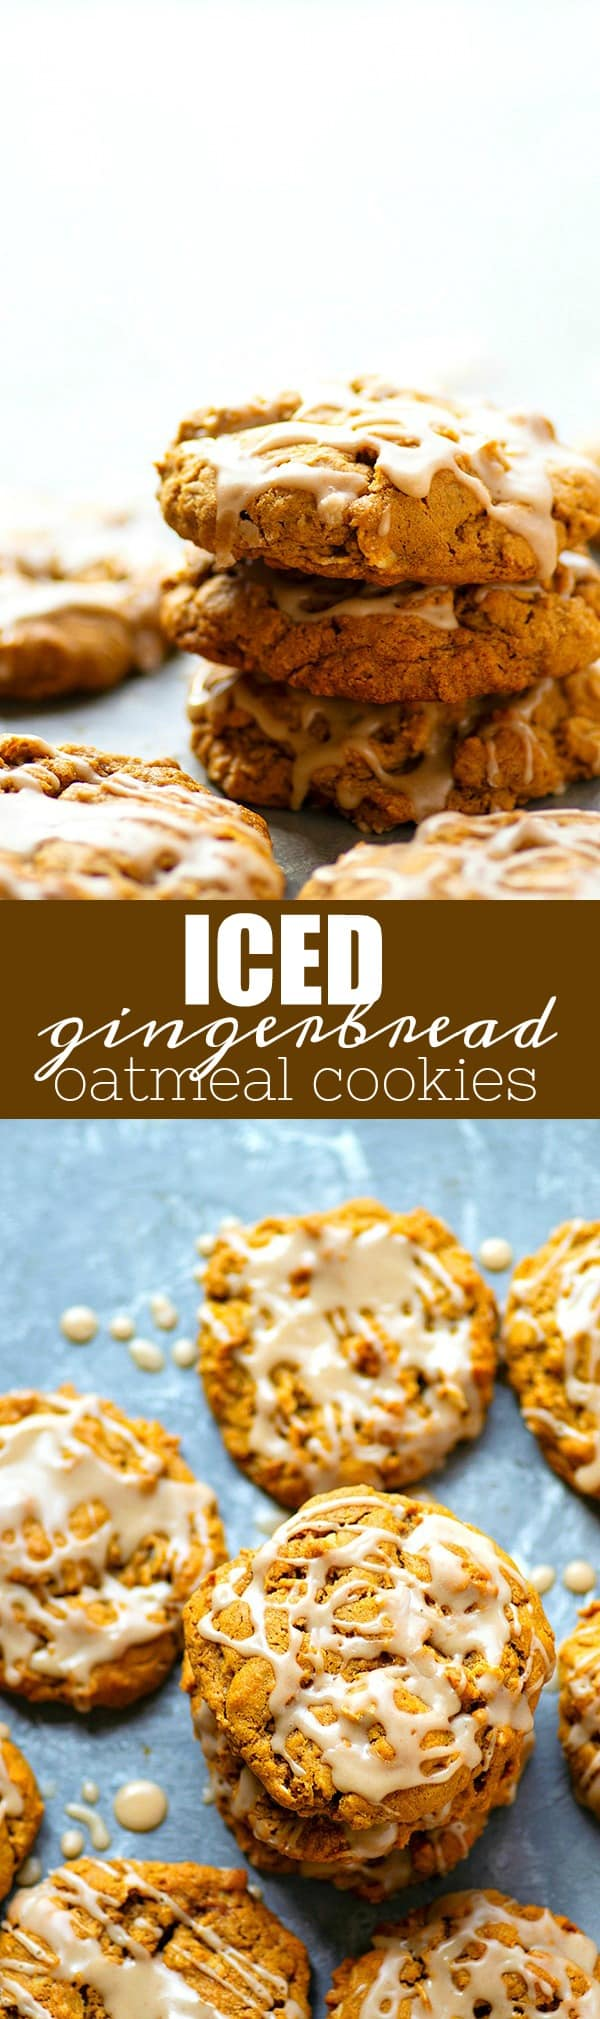 Iced Gingerbread Oatmeal Cookies - Packed with irresistible gingerbread flavors, super chewy, and draped in sweet vanilla icing, these iced gingerbread oatmeal cookies are a holiday cookie tray necessity!